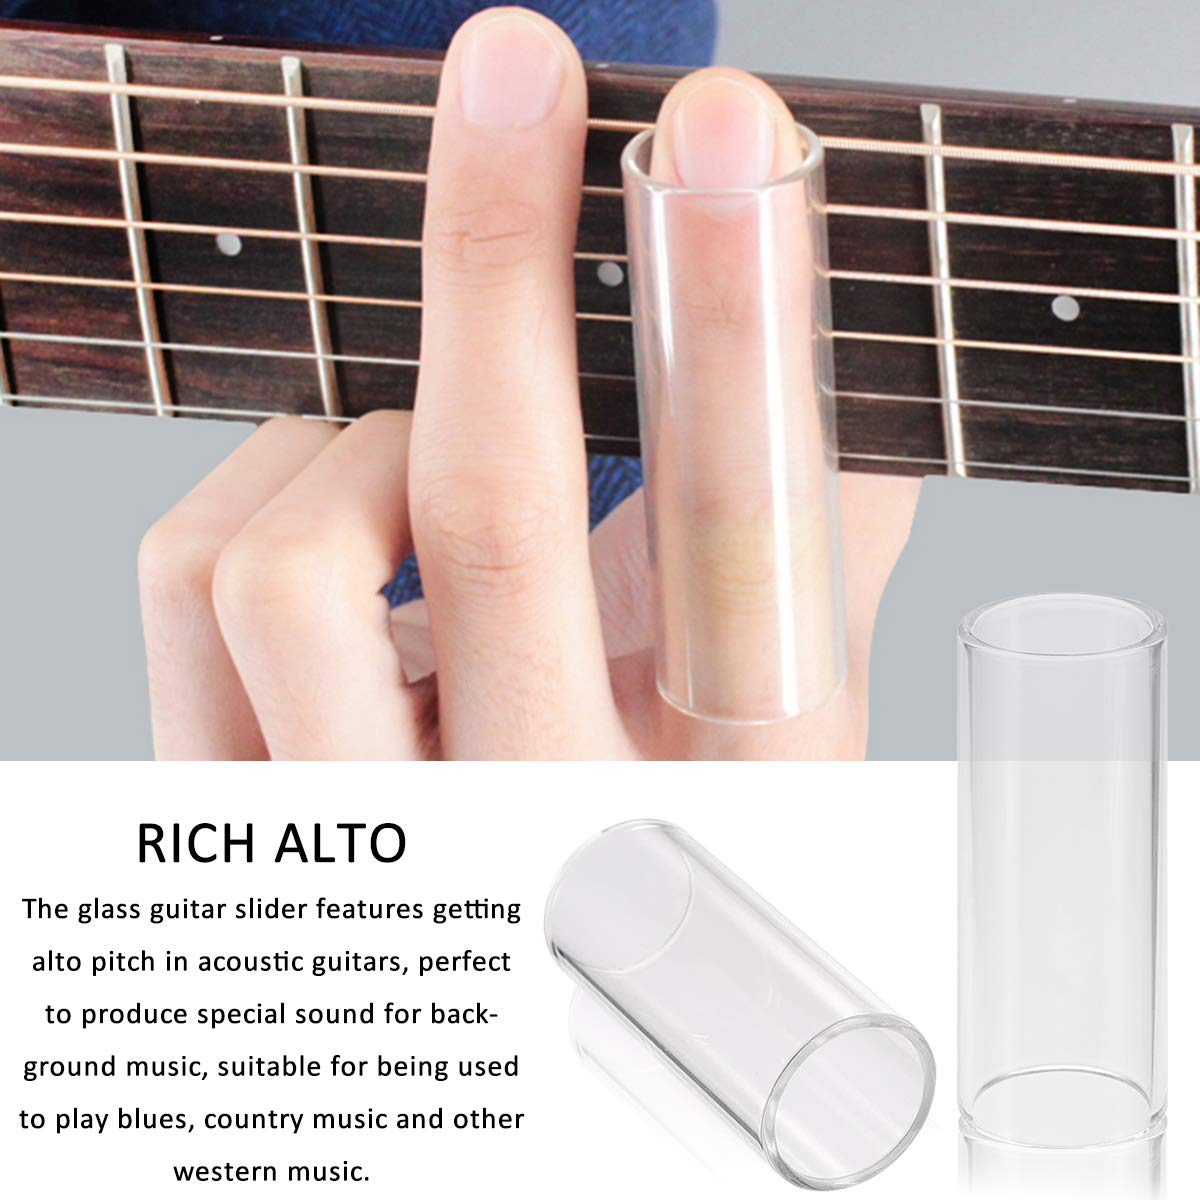 X-Mile 3 Piezas Guitar Sliders Guitar Finger Cots con 2 Piezas Slide de Acero 1 Pieza Slide de Cristal Inoxidable en Caja para Country Music Heavy Metal ...